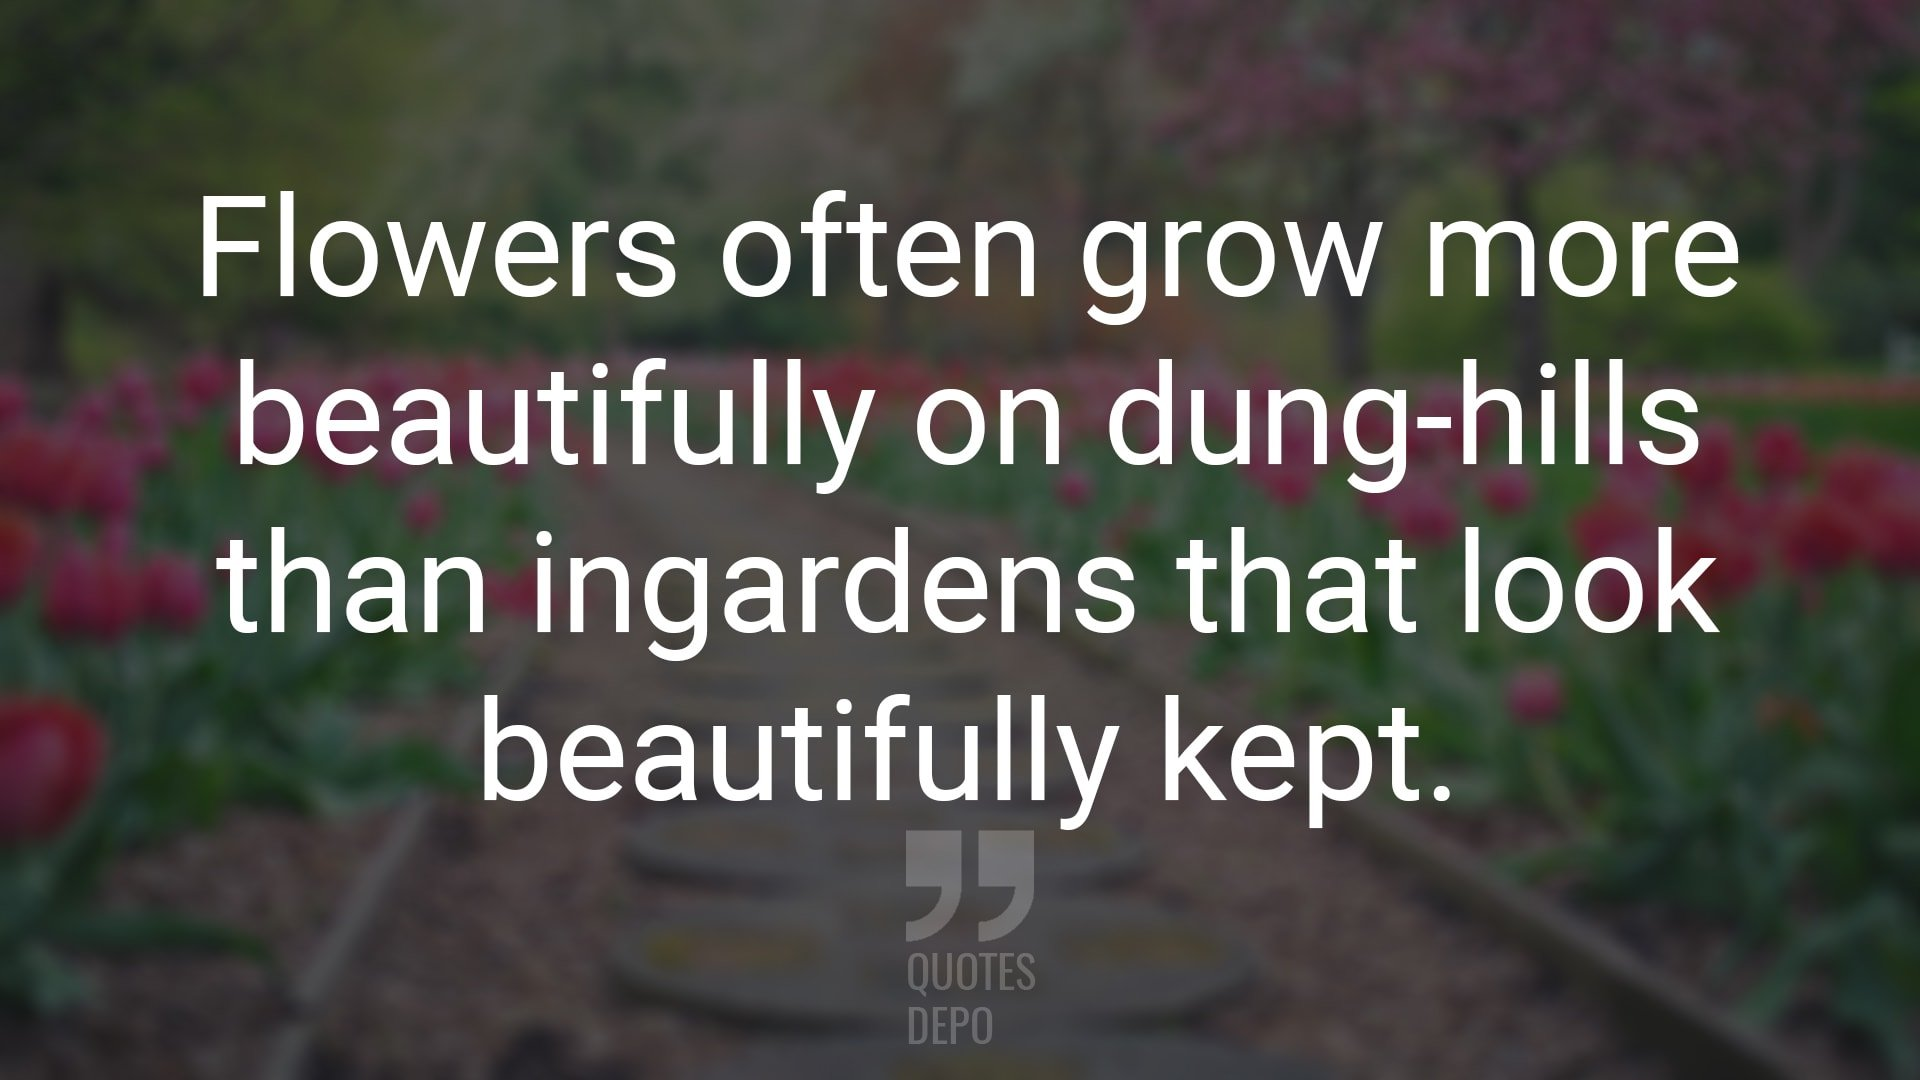 flowers often grow more beautifully